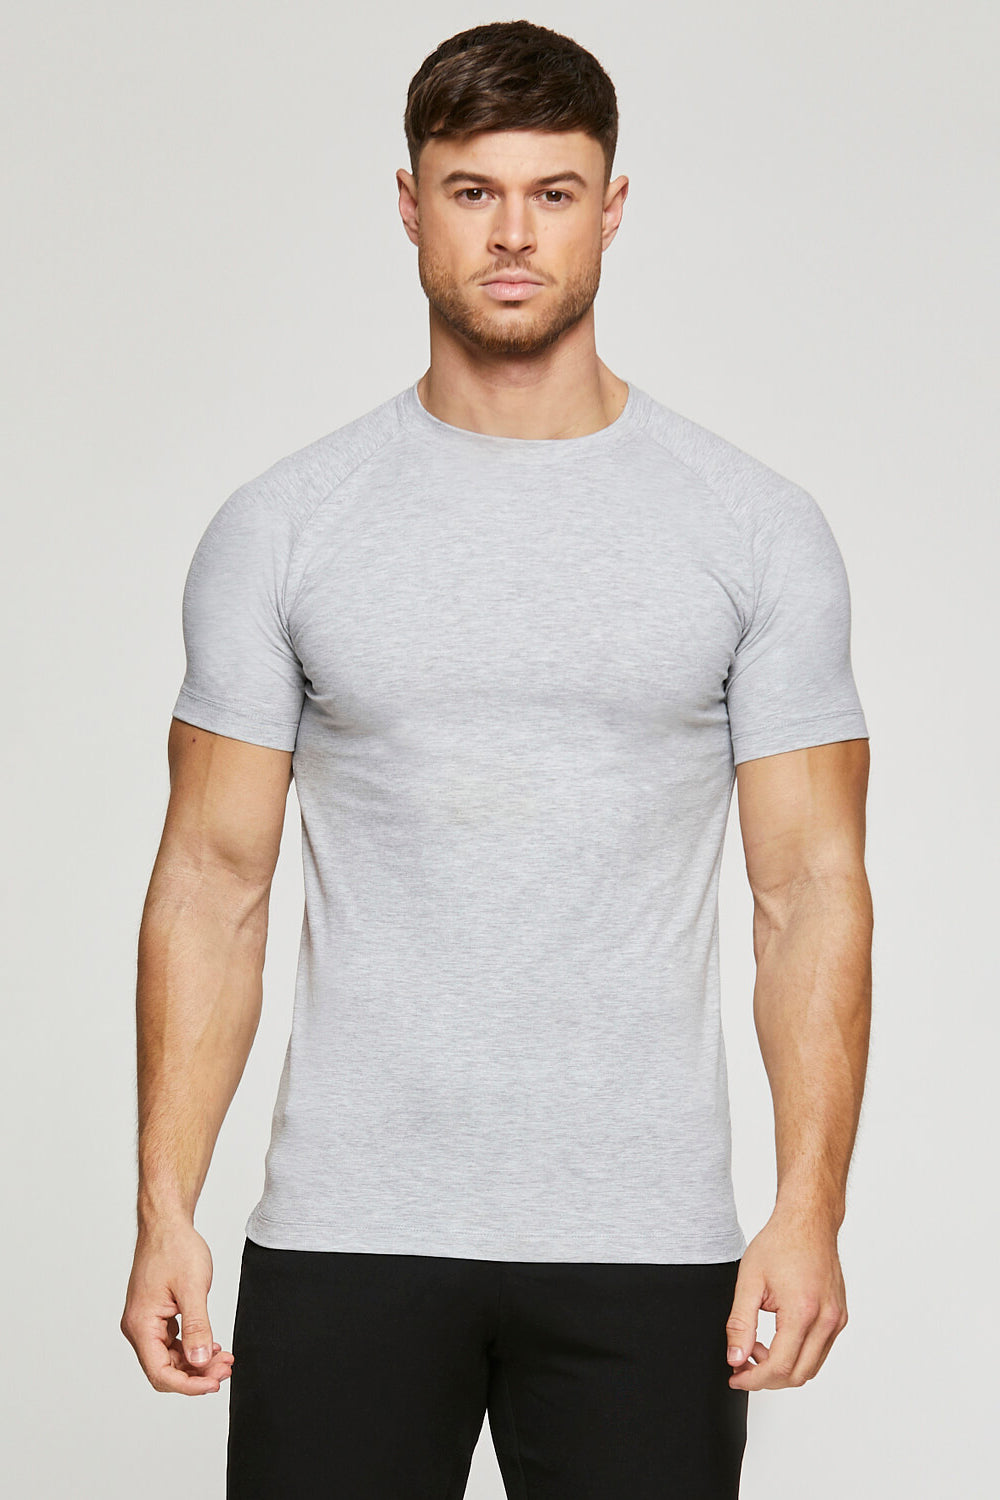 365 T-Shirt in Soft Grey